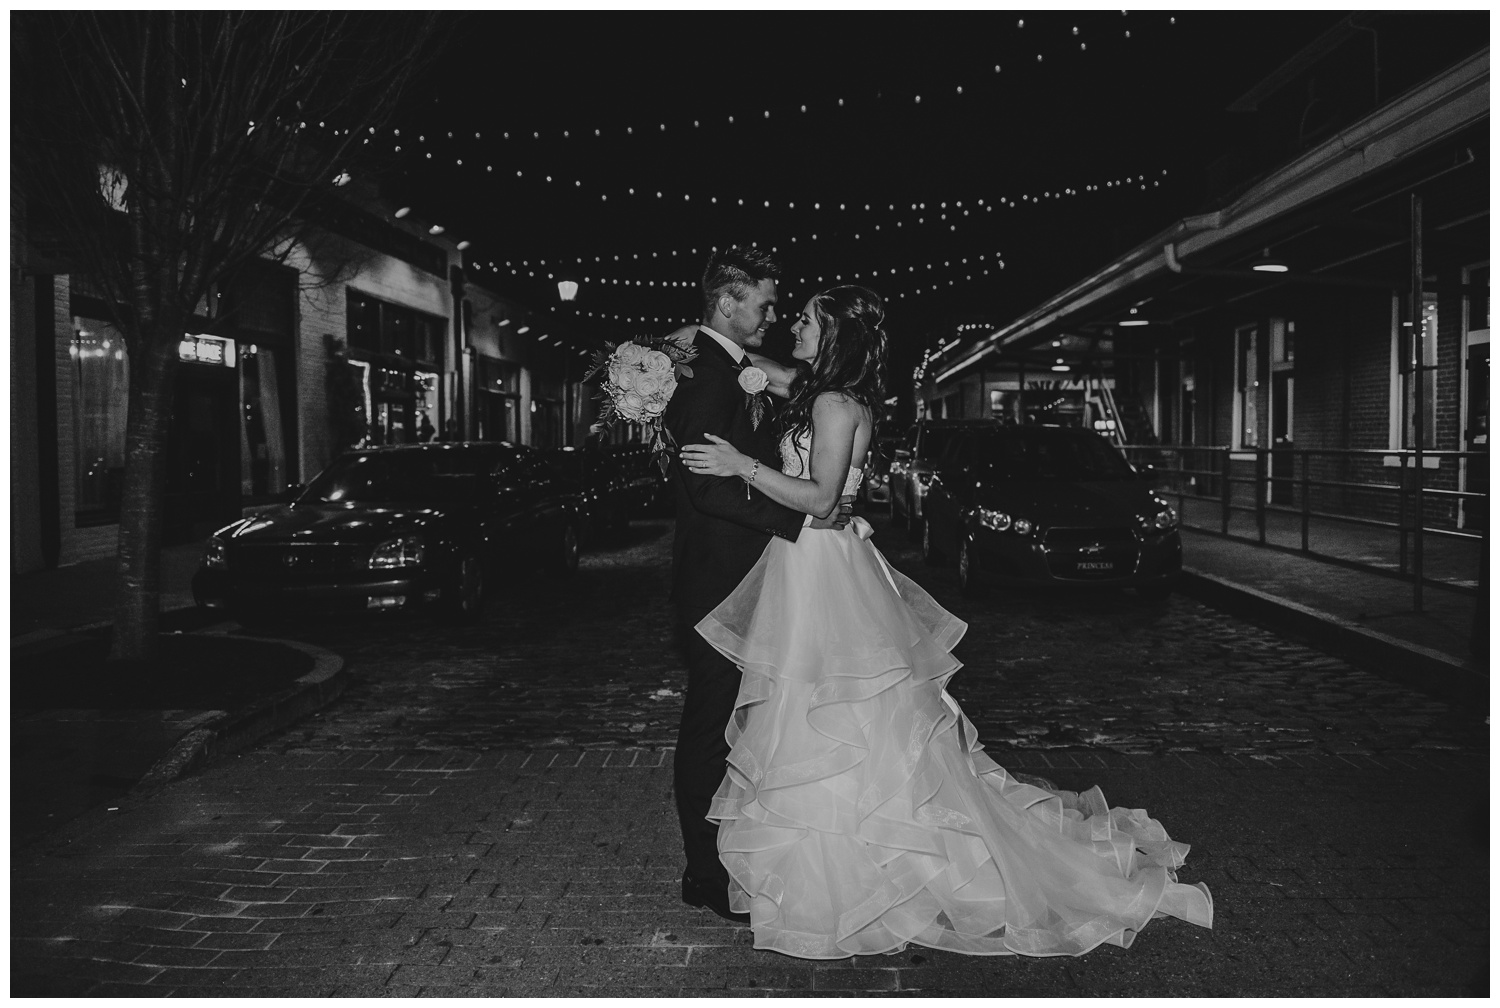 The bride and groom pose for a night portrait at Raleigh's Market Hall after their wedding ceremony, picture by Rose Trail Images.